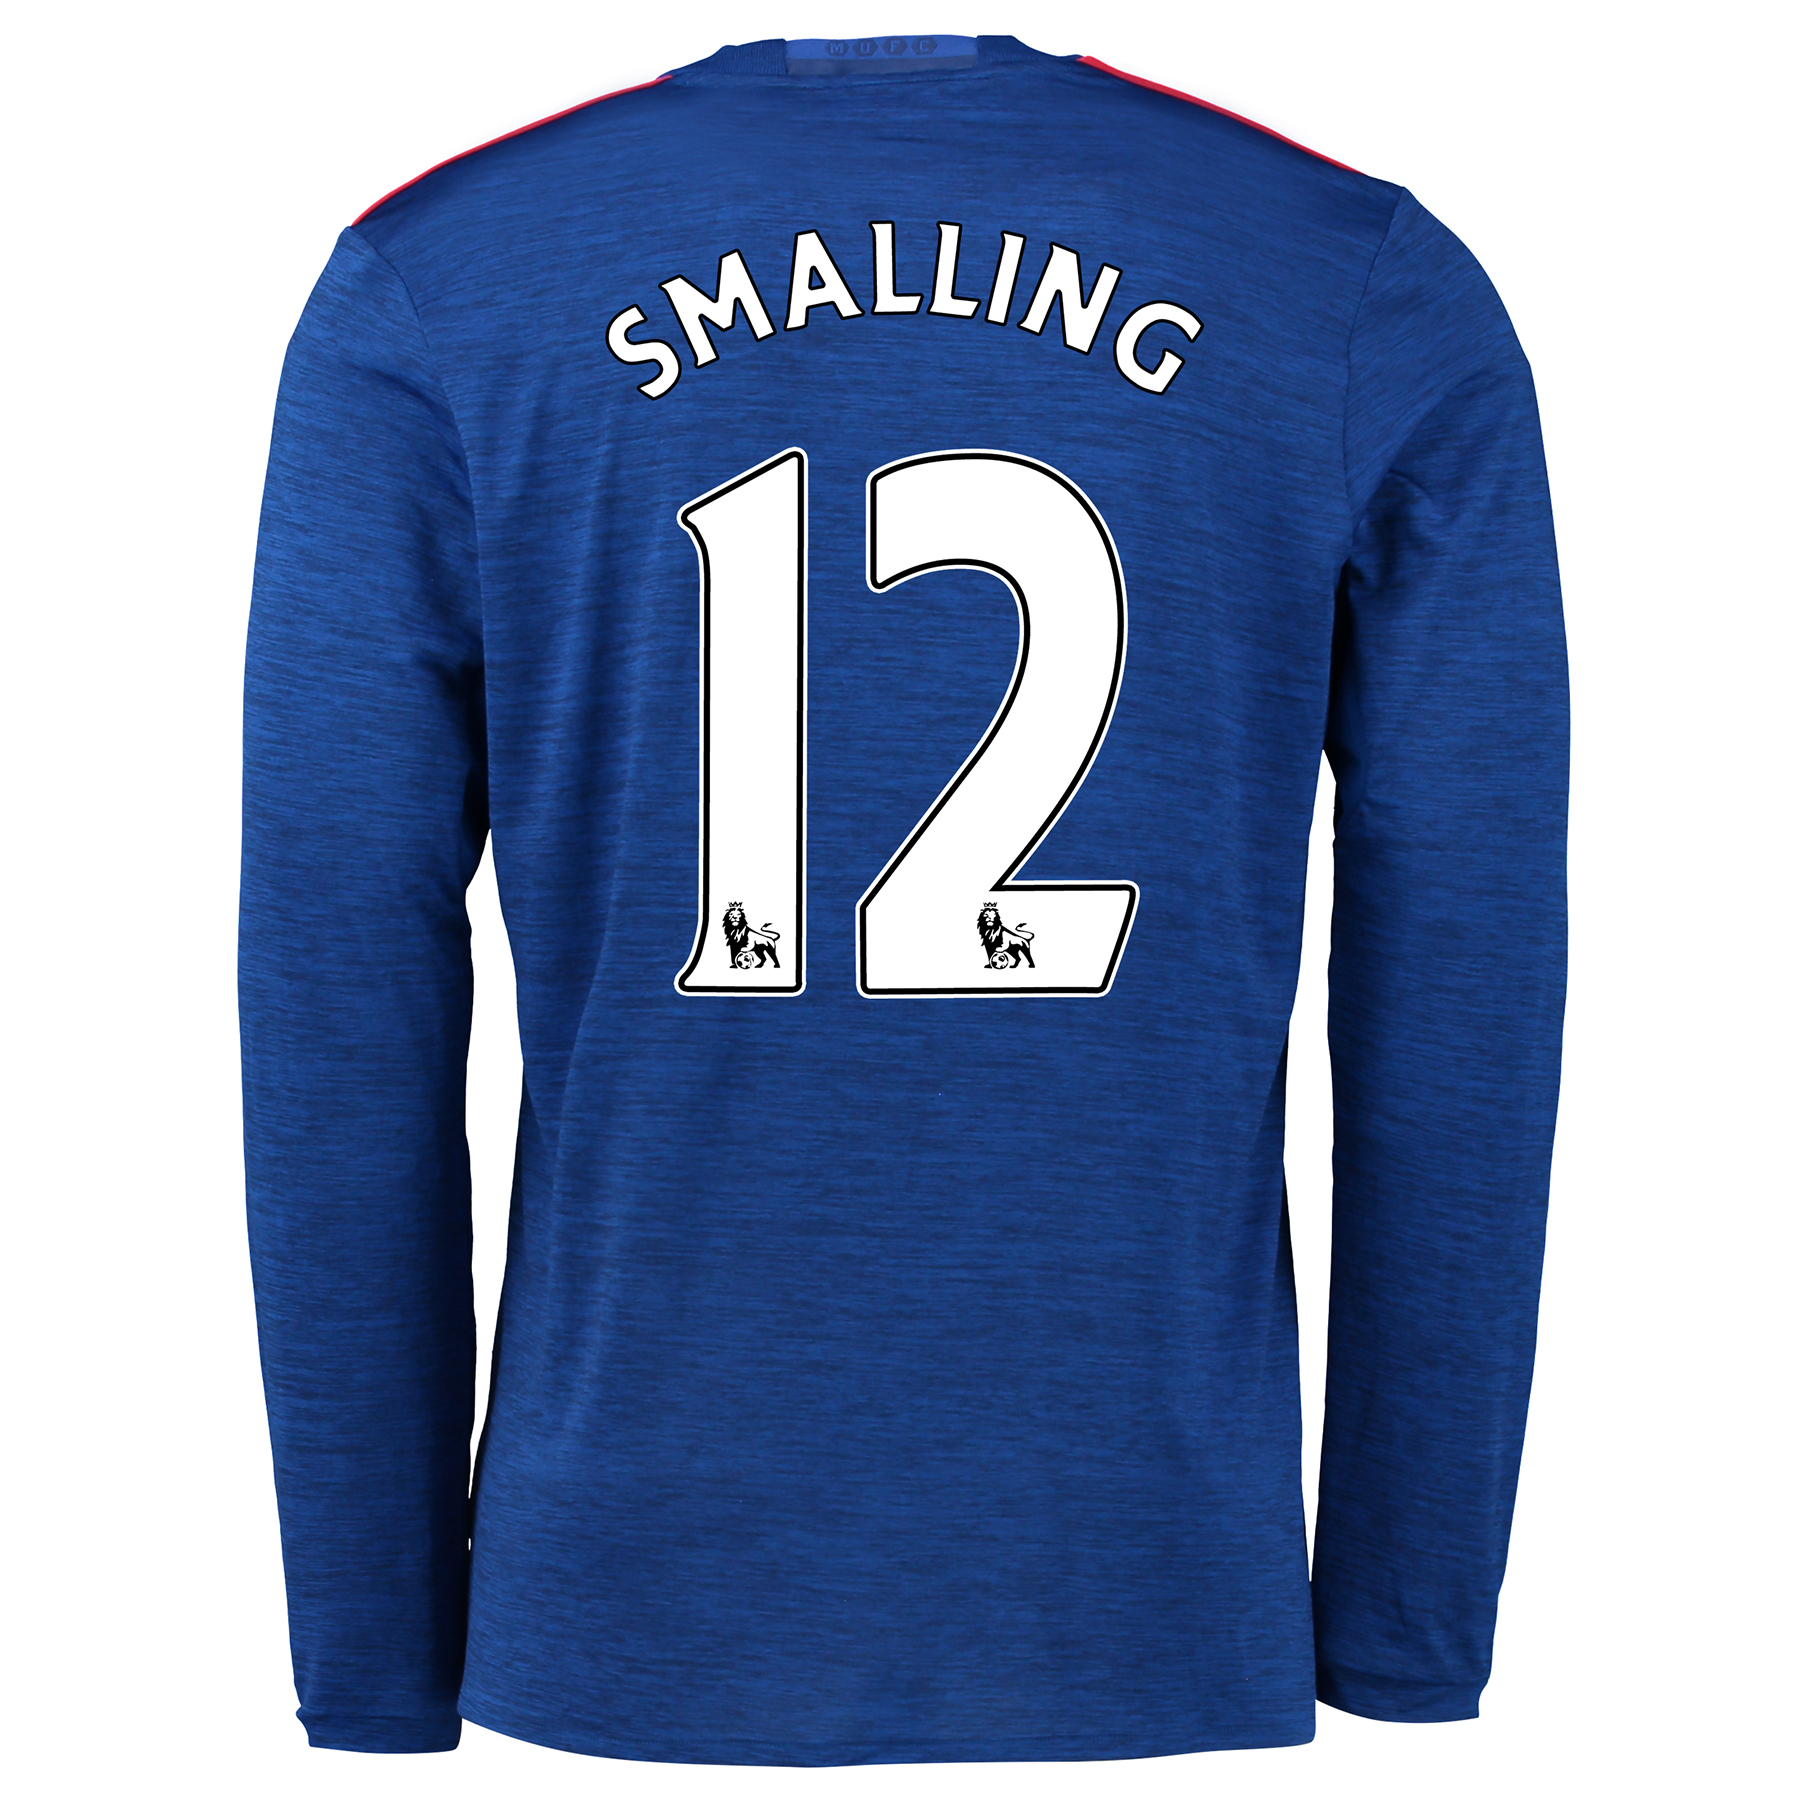 Manchester United Away Shirt 2016-17 - Long Sleeve with Smalling 12 pr